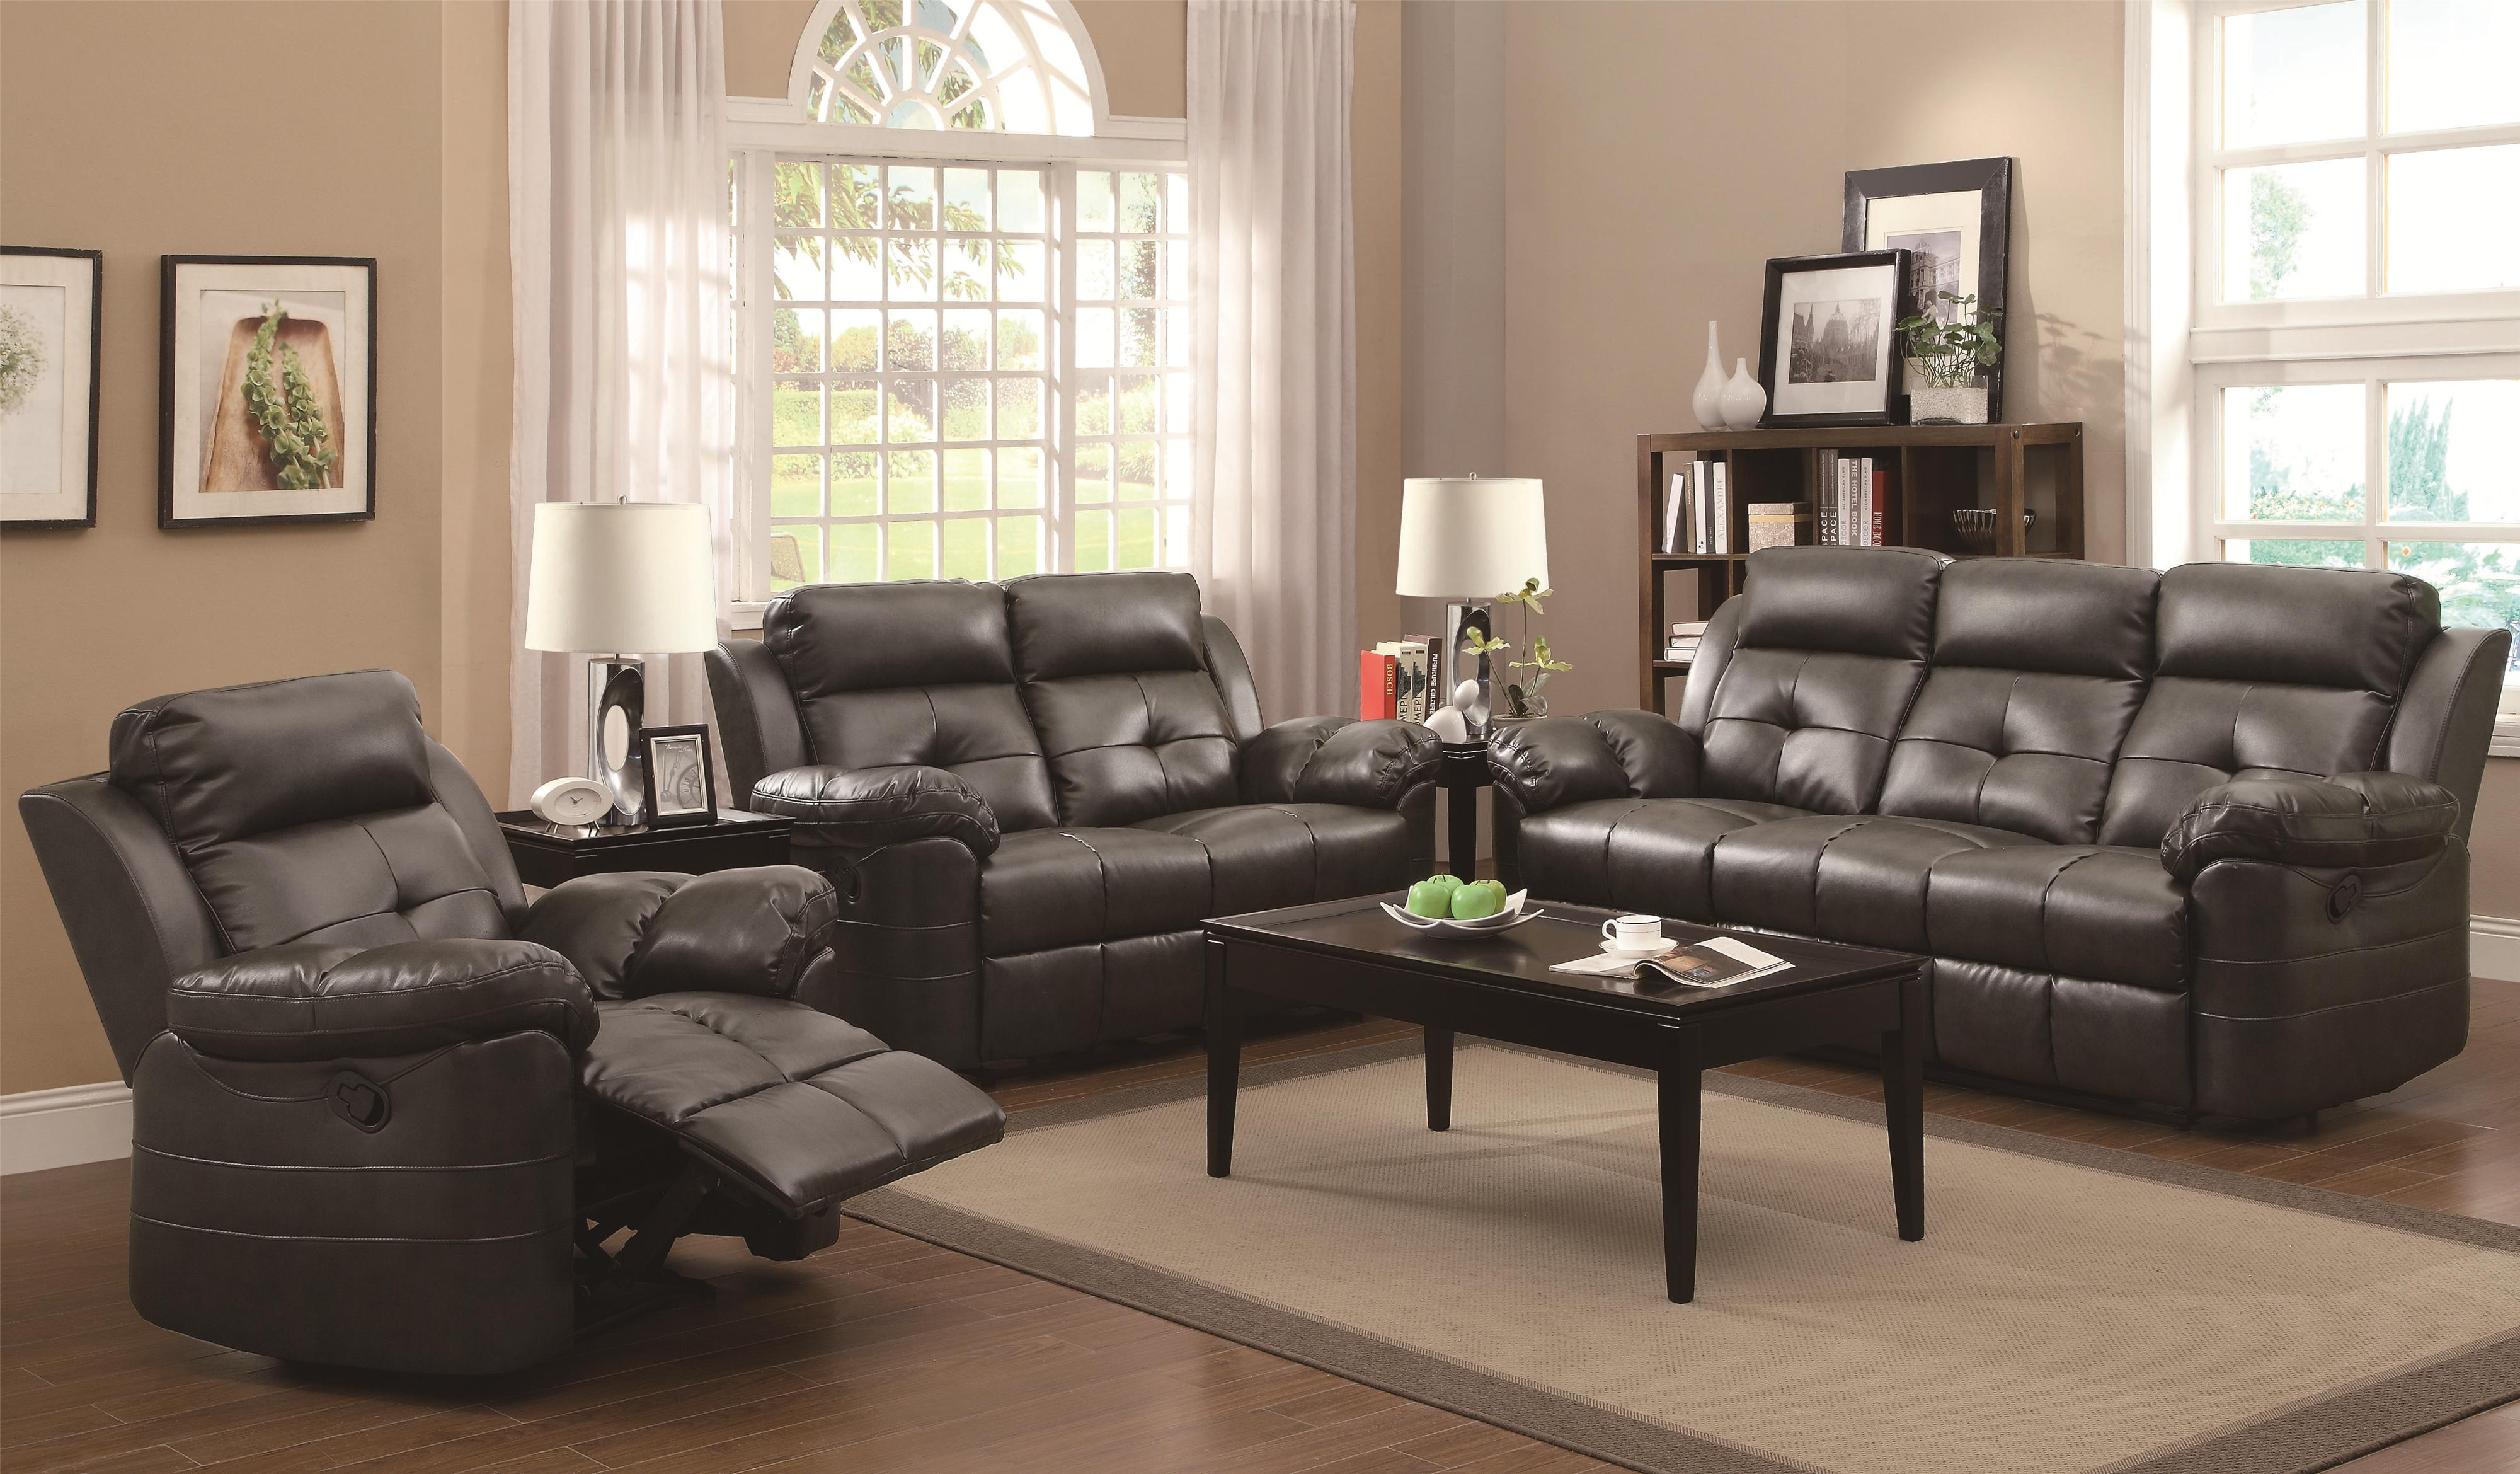 Bana Home Decor Keating Reclining Motion Love Seat With Contemporay Style